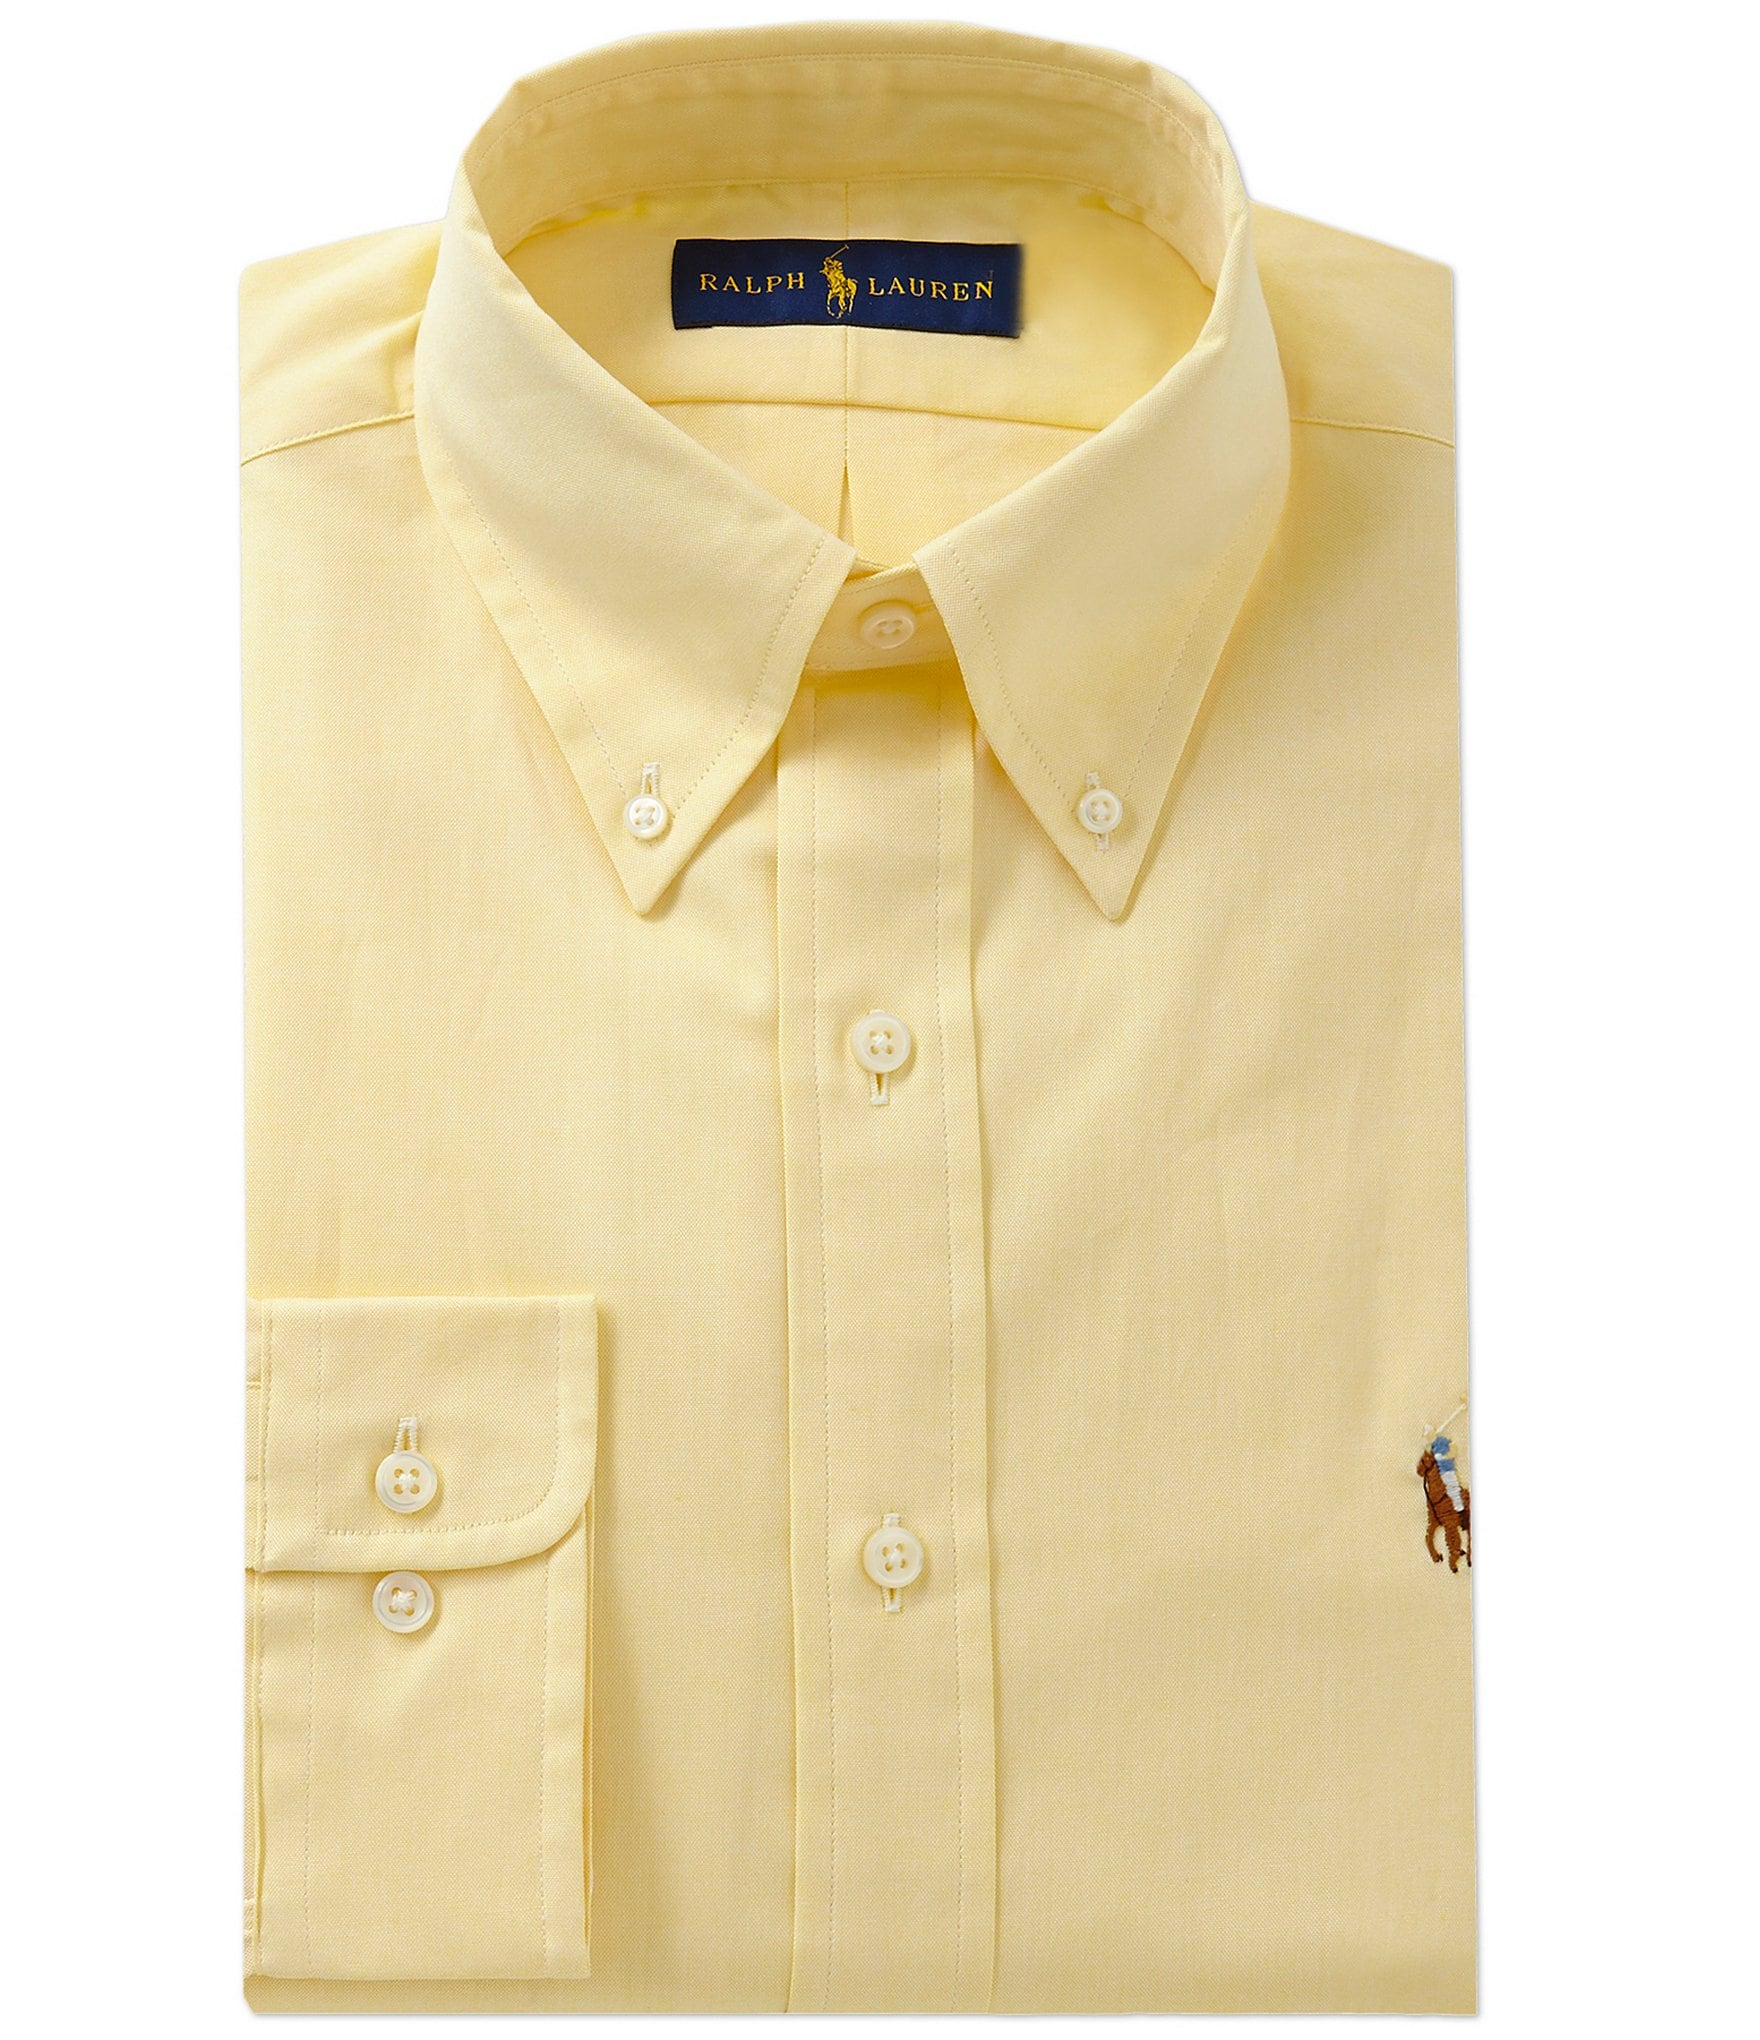 Polo ralph lauren classic fit solid oxford dress shirt for Mens polo dress shirts